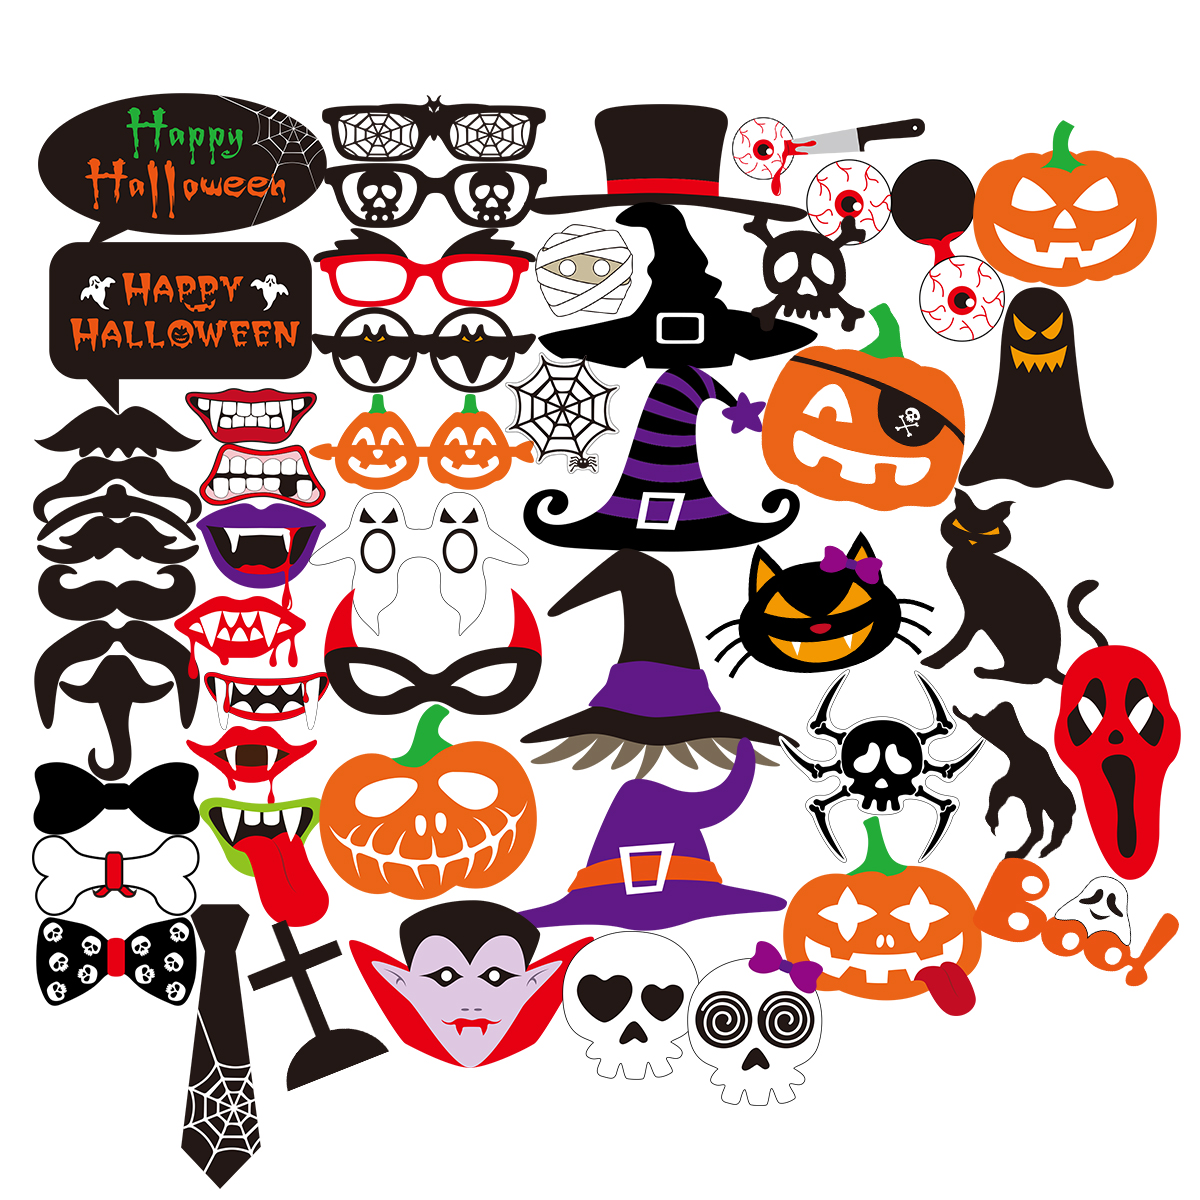 Compare Prices on Halloween Party Supplies- Online Shopping/Buy ...